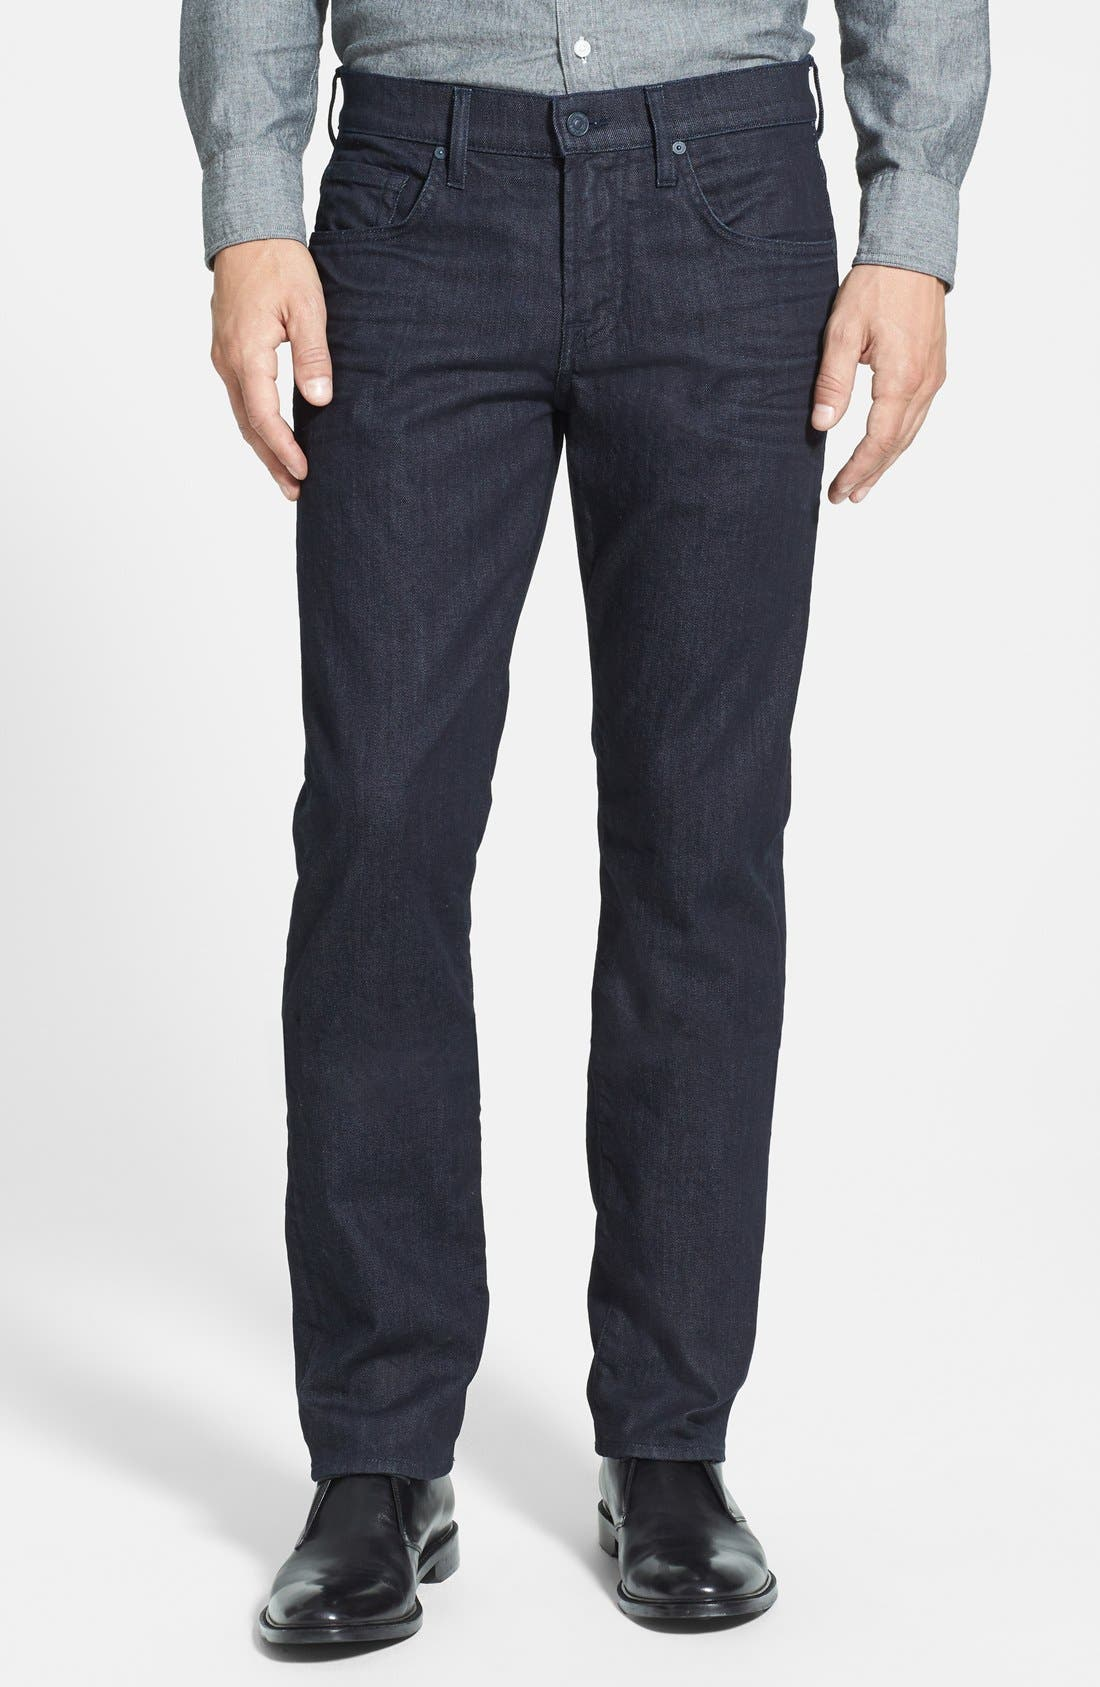 Men's 7 For All Mankind The Straight - Luxe Performance Slim Straight Leg Jeans